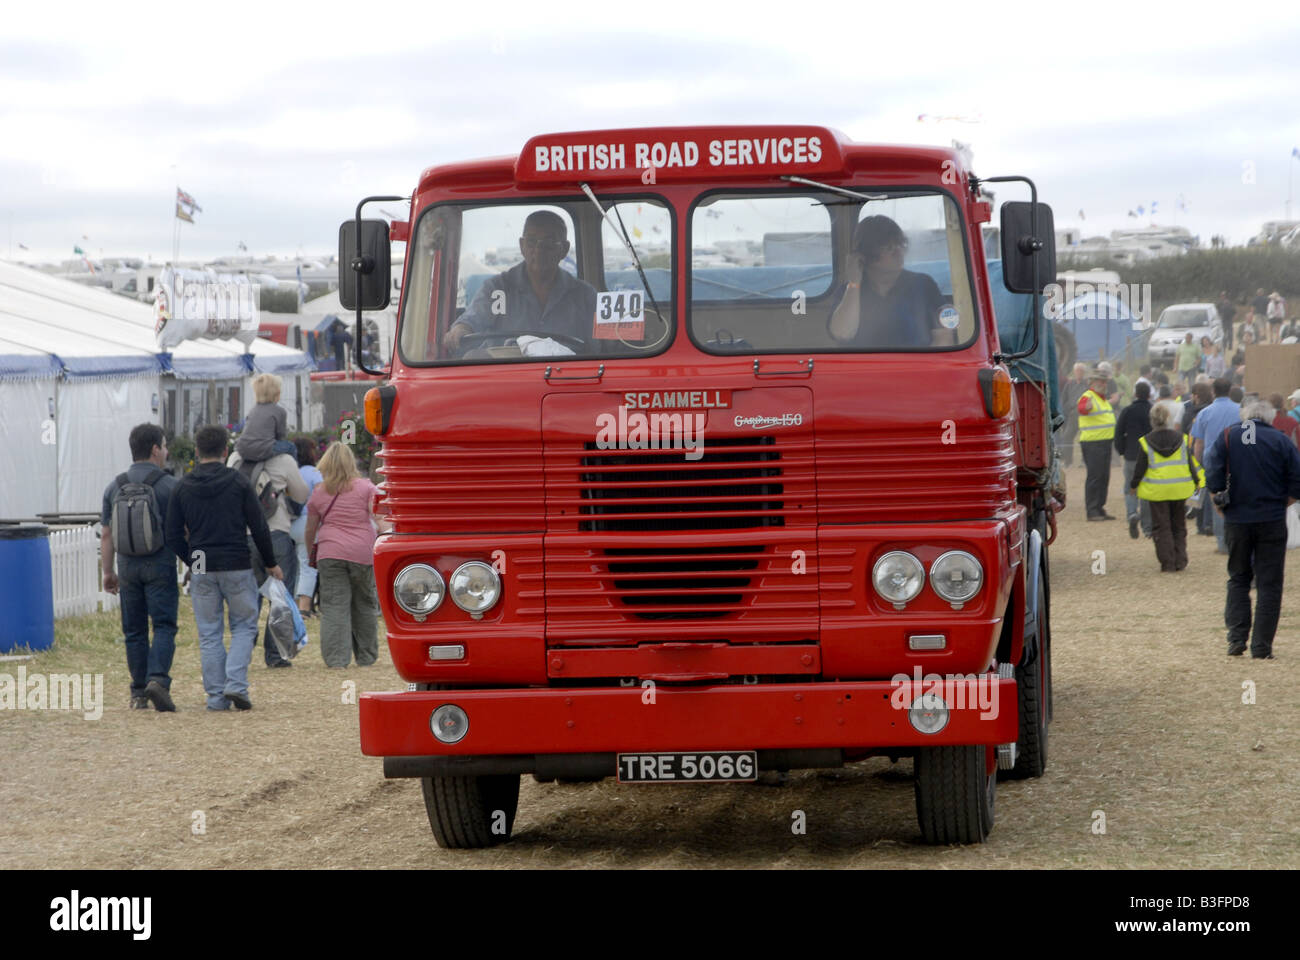 1960s Lorry Stock Photos Images Alamy 19601970 Mercedes Benz Trucks British Road Services Scammell Truck At The Great Dorset Steam Fair Image